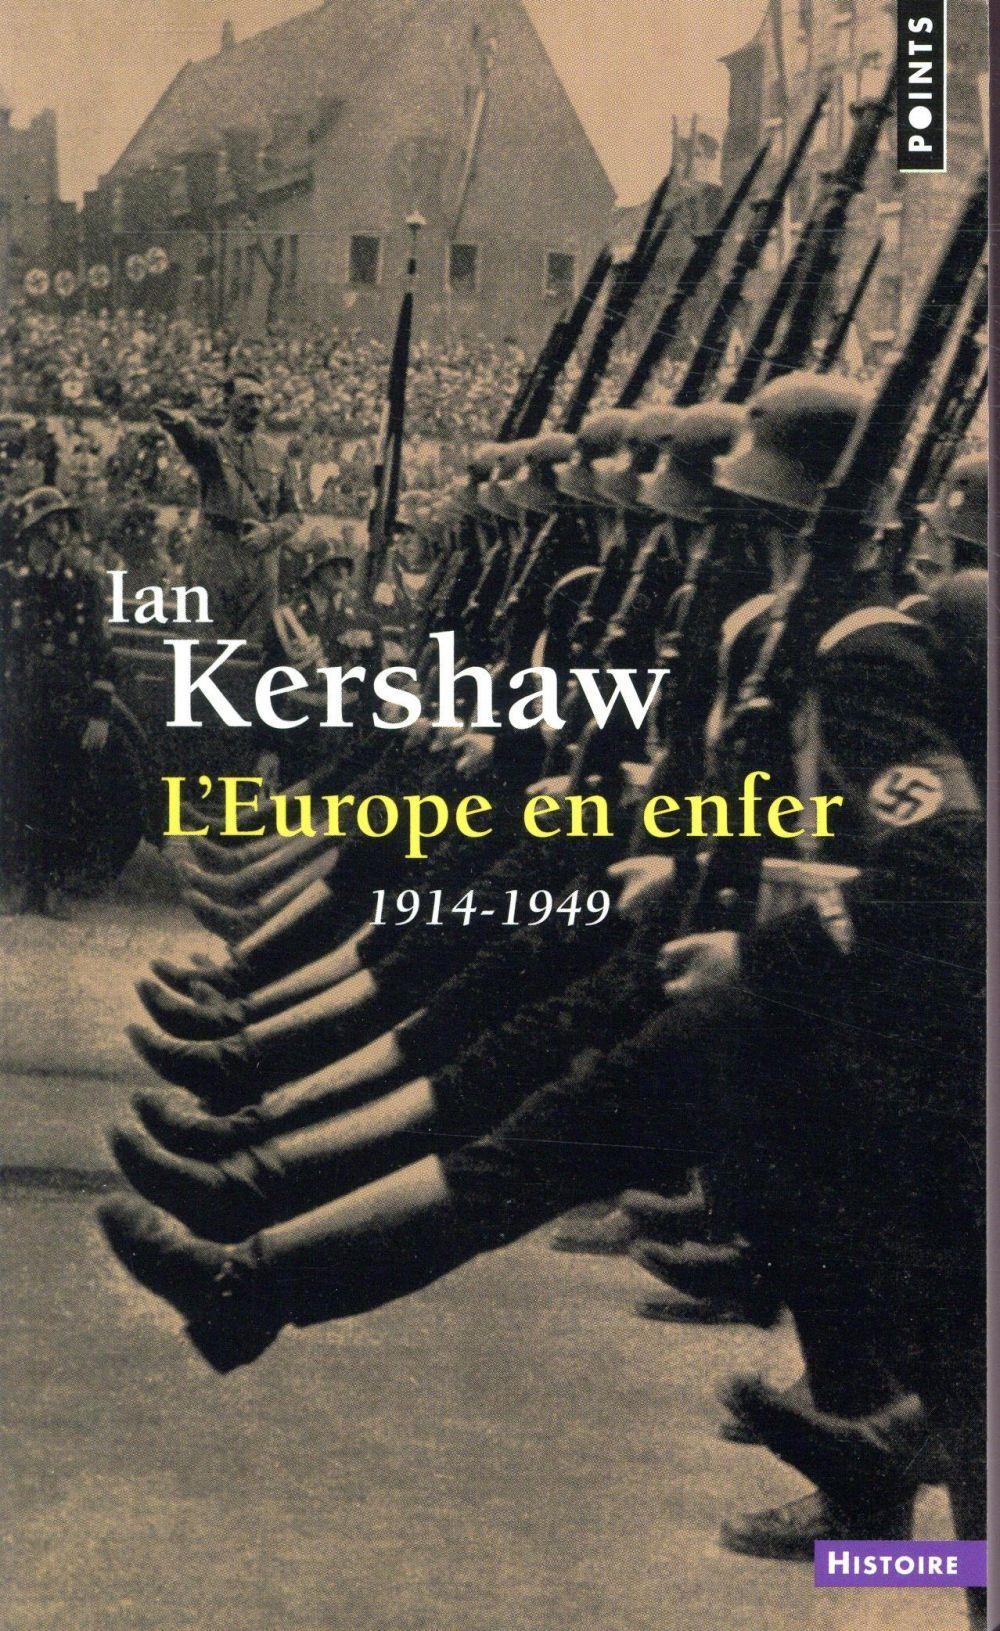 Vente                                 L'Europe en enfer (1914-1949)                                  - Ian Kershaw